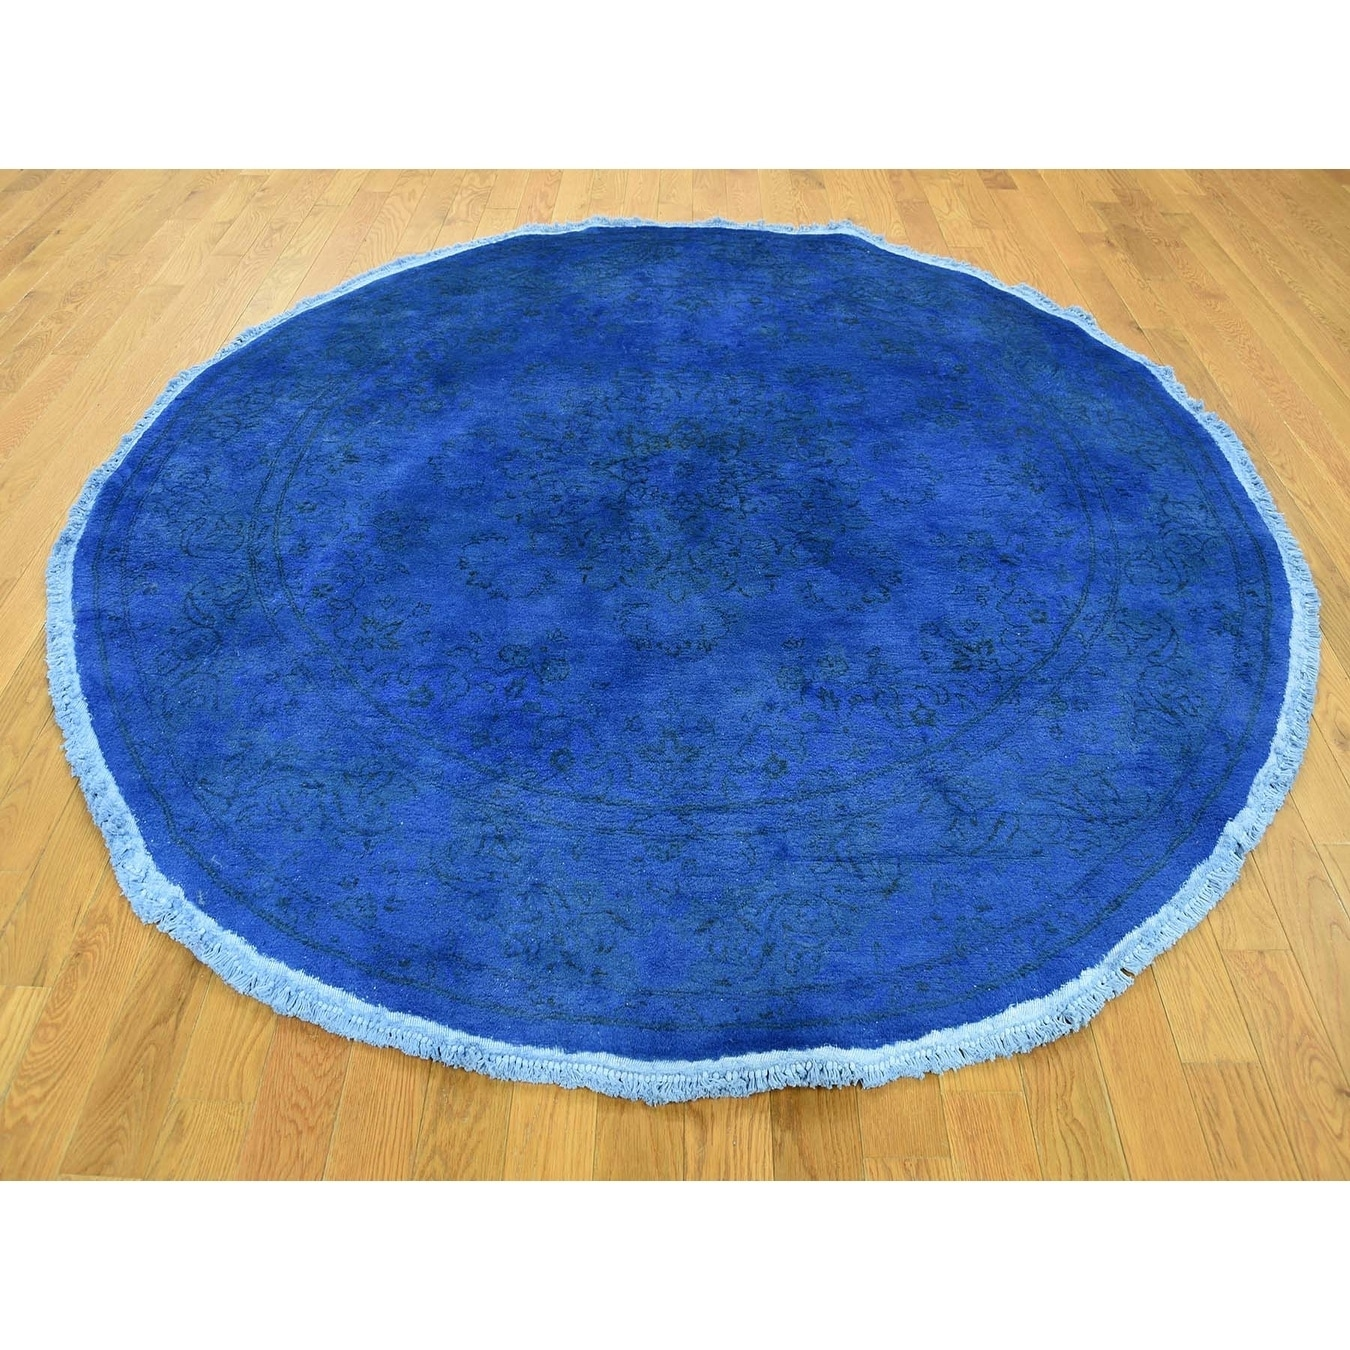 Hand Knotted Blue Overdyed & Vintage with Wool Oriental Rug - 61 x 61